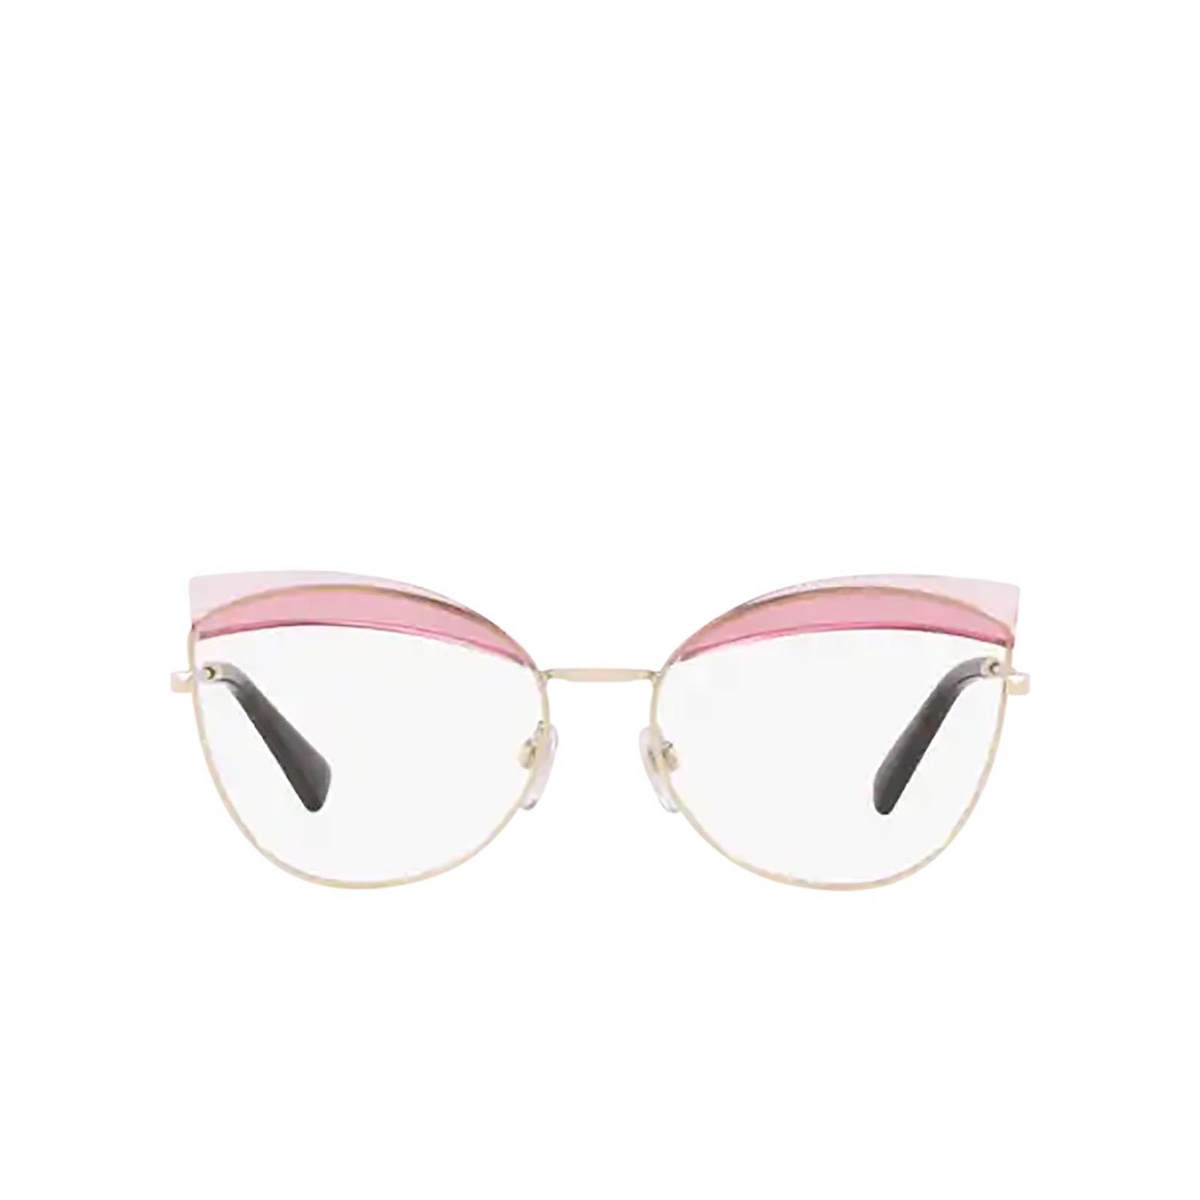 Valentino® Butterfly Eyeglasses: VA1014 color Light Gold 3003 - front view.